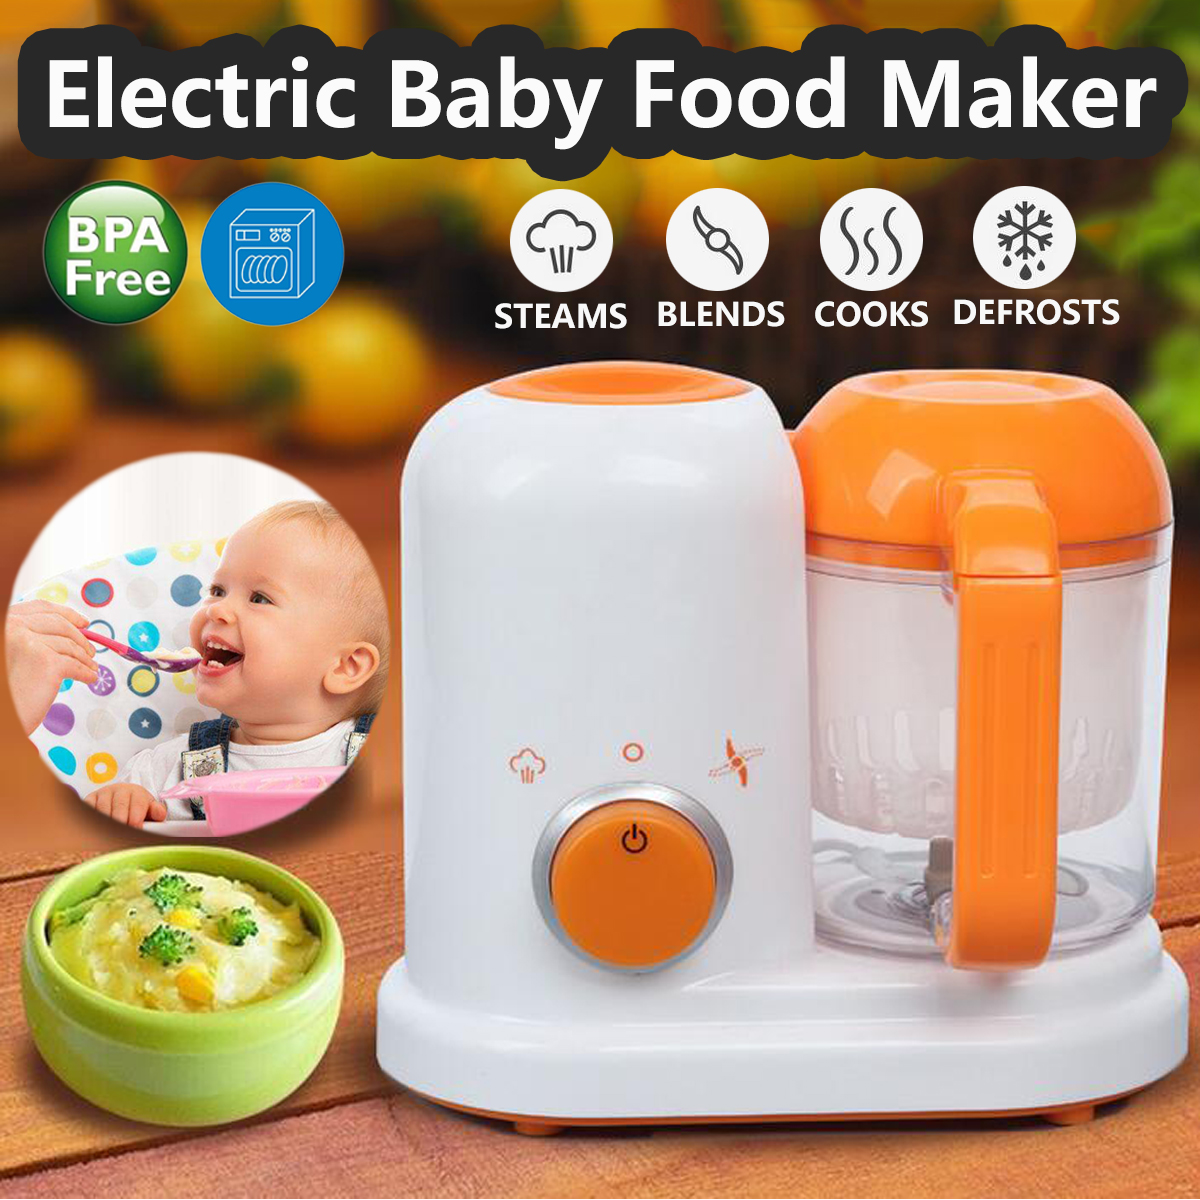 Electric Baby Food Maker All In One Toddler Blenders Steamer Processor BPA Free Food-Graded PP EU AC 200-250V Steam Food Safe блузка gulliver блузка